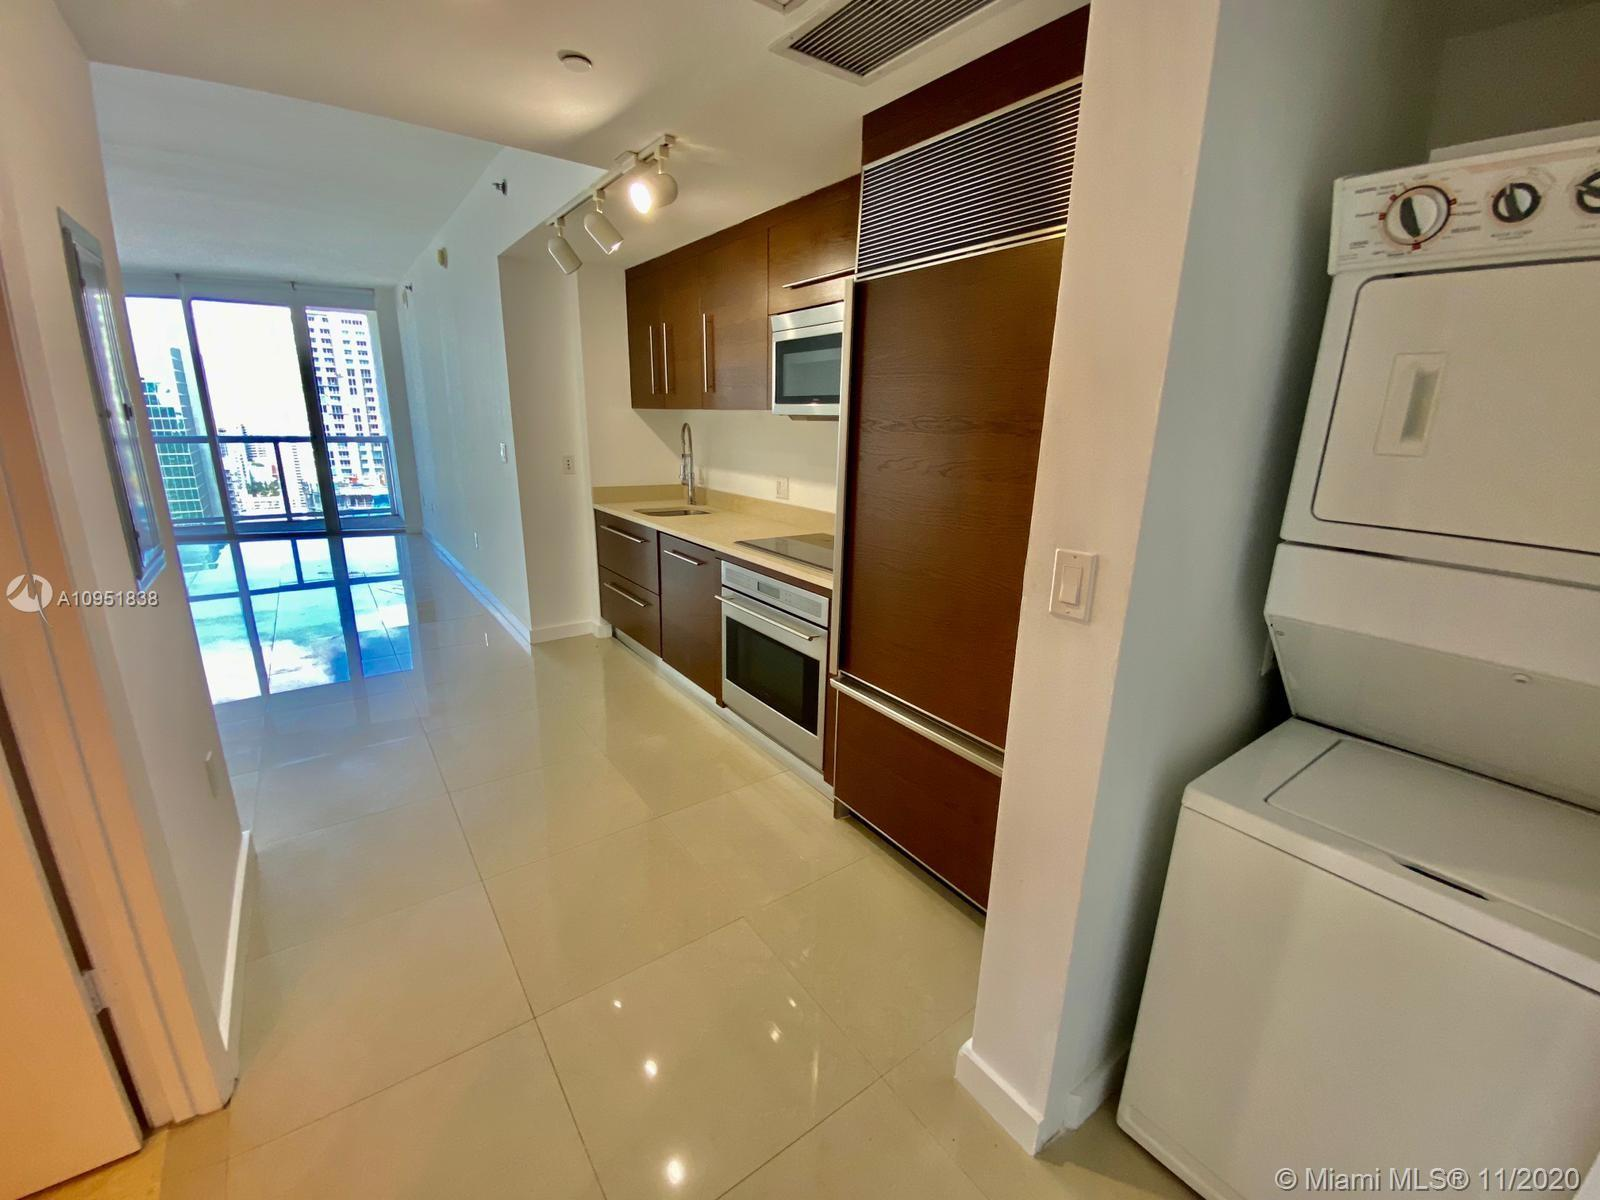 Icon Brickell 1 #3710 - 475 Brickell Ave #3710, Miami, FL 33131